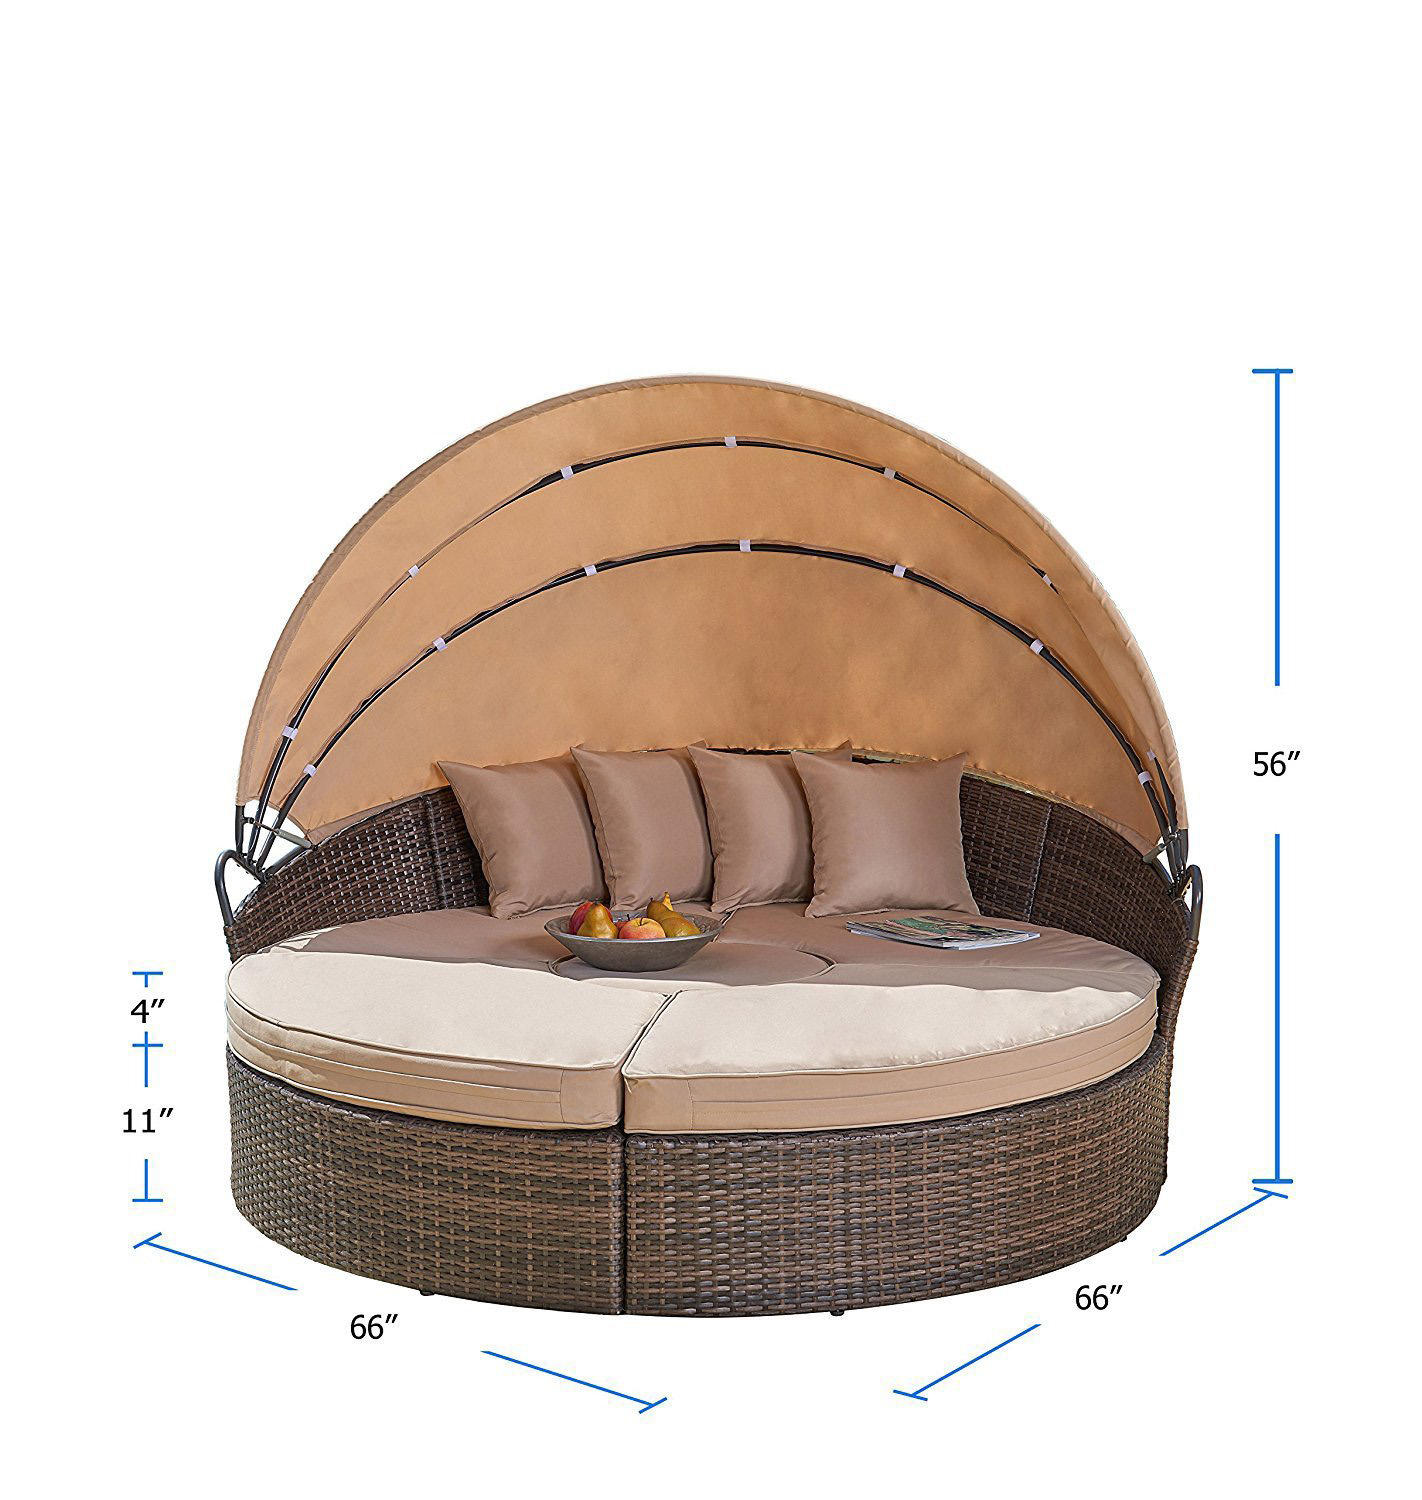 Outdoor Furniture Wicker rattan with Retractable Canopy Clamshell Seating